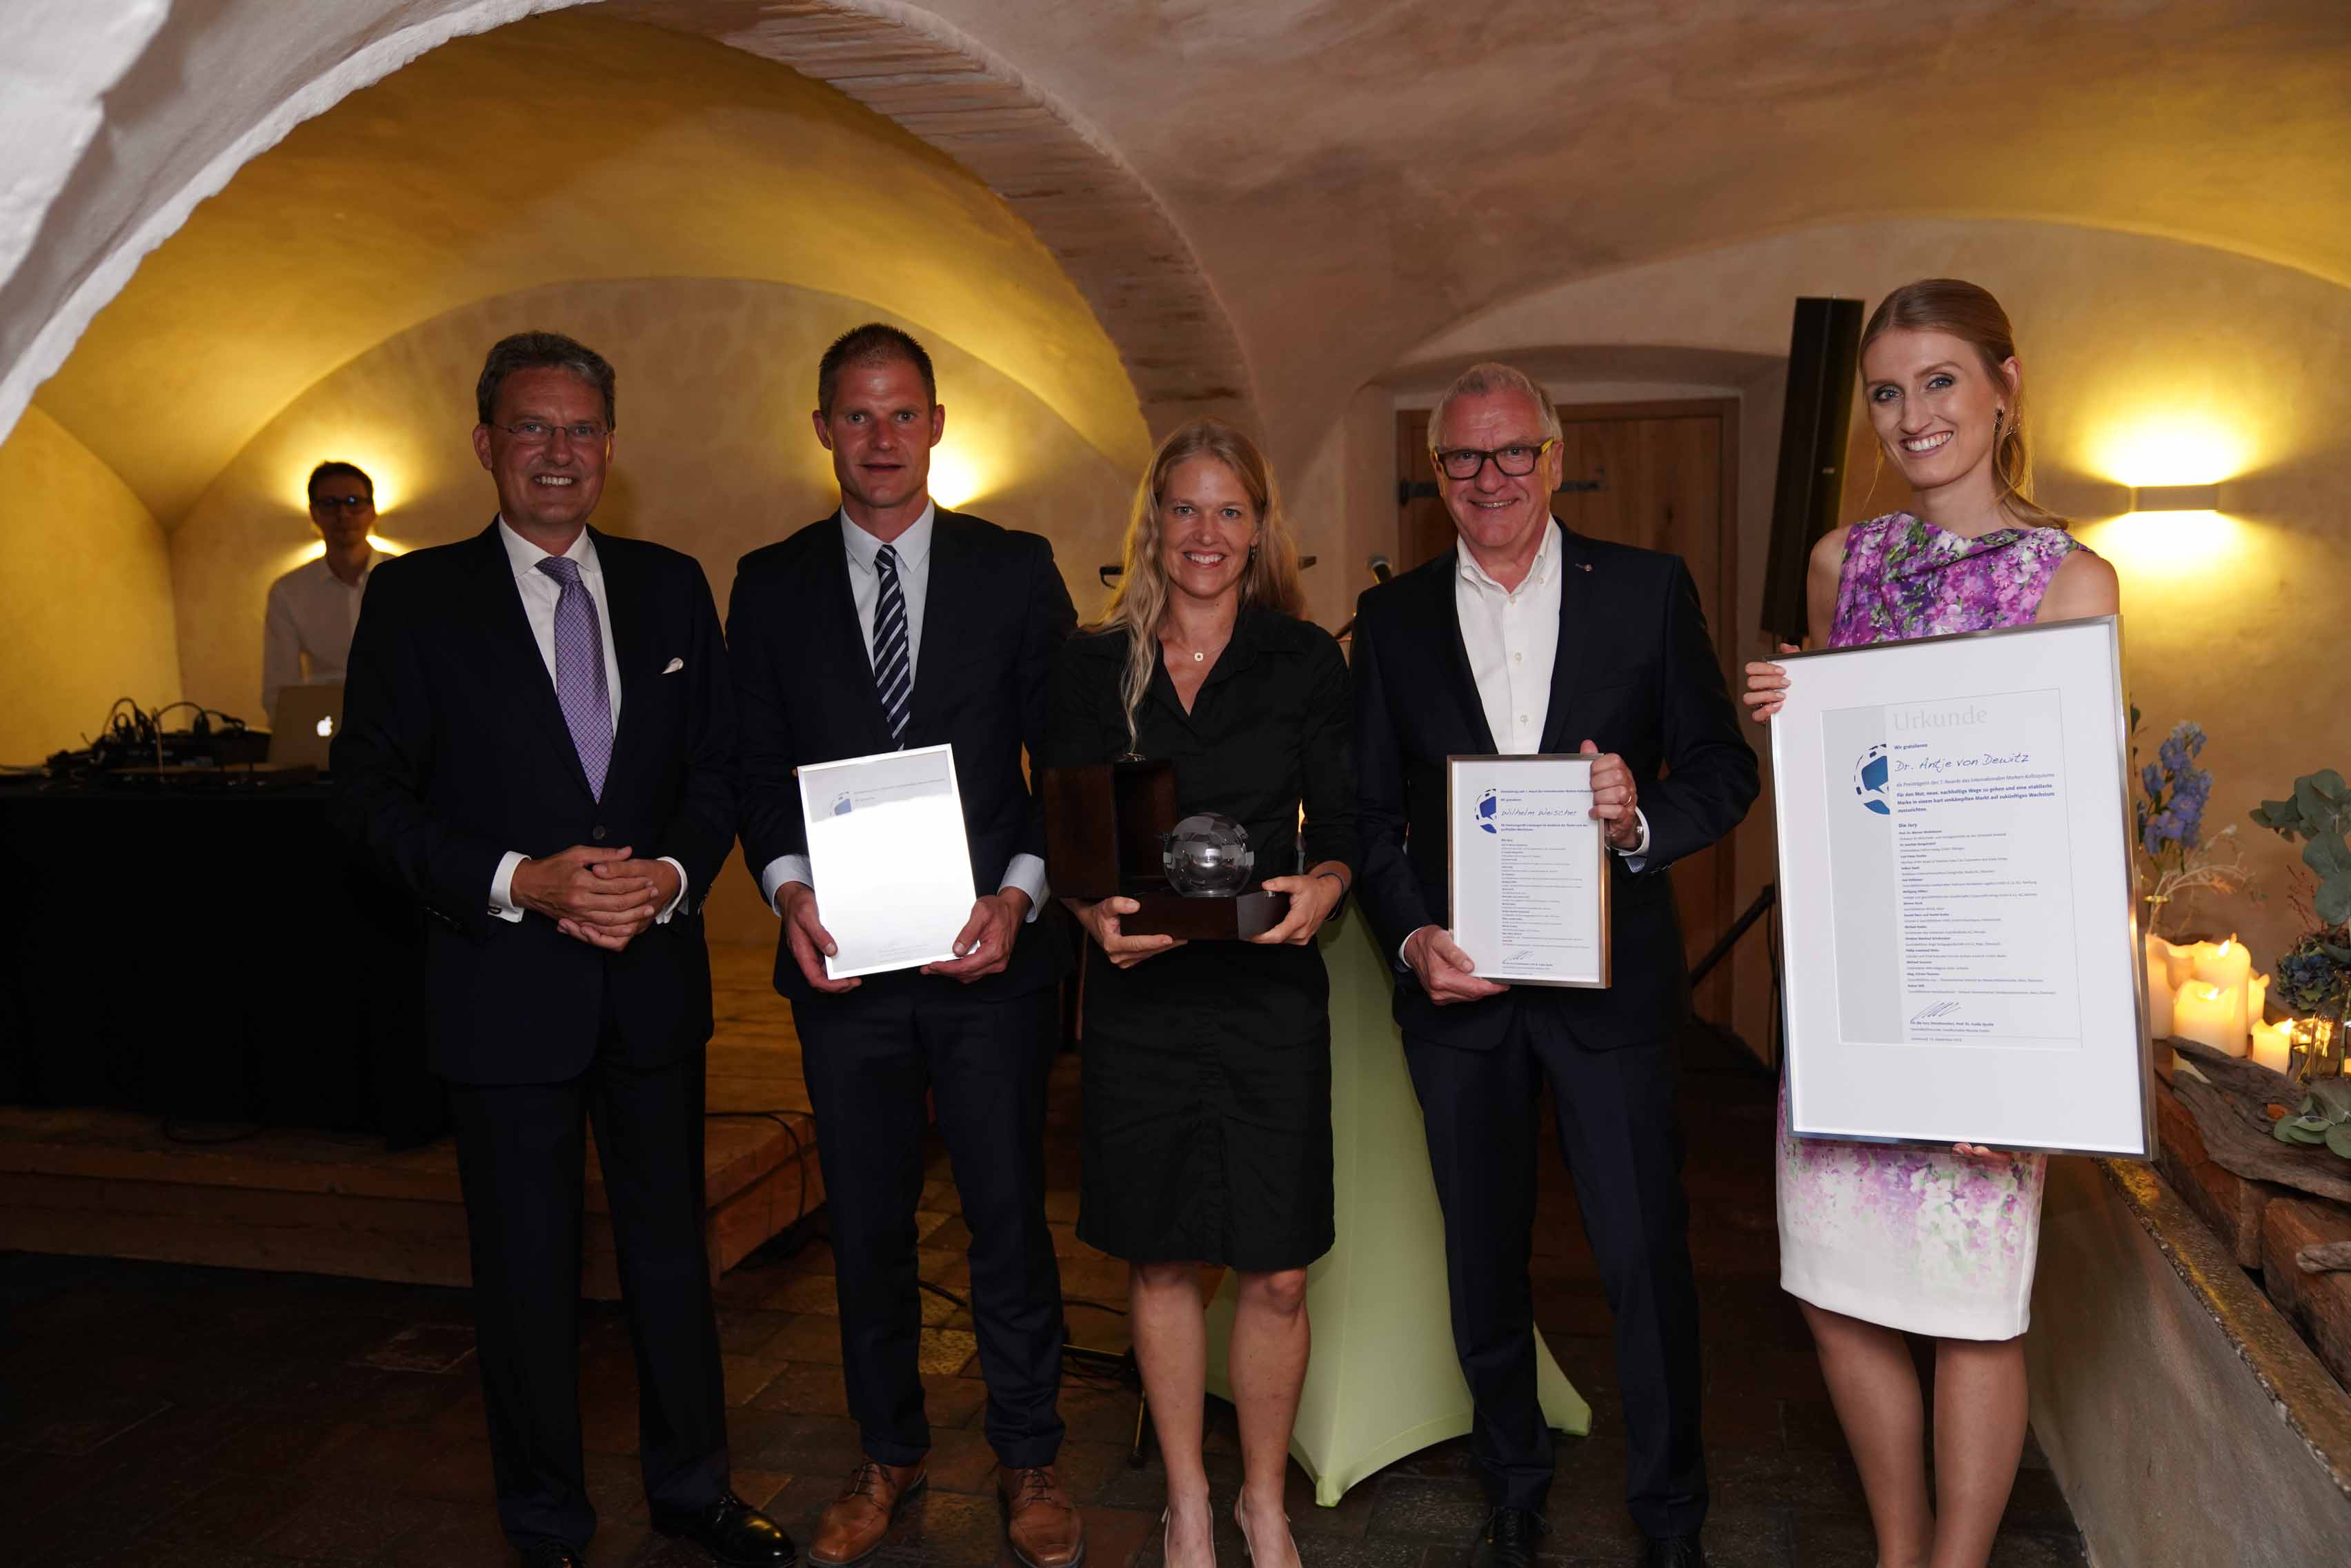 Award-Verleihung des 15. Internationales Marken-Kolloquiums 2018